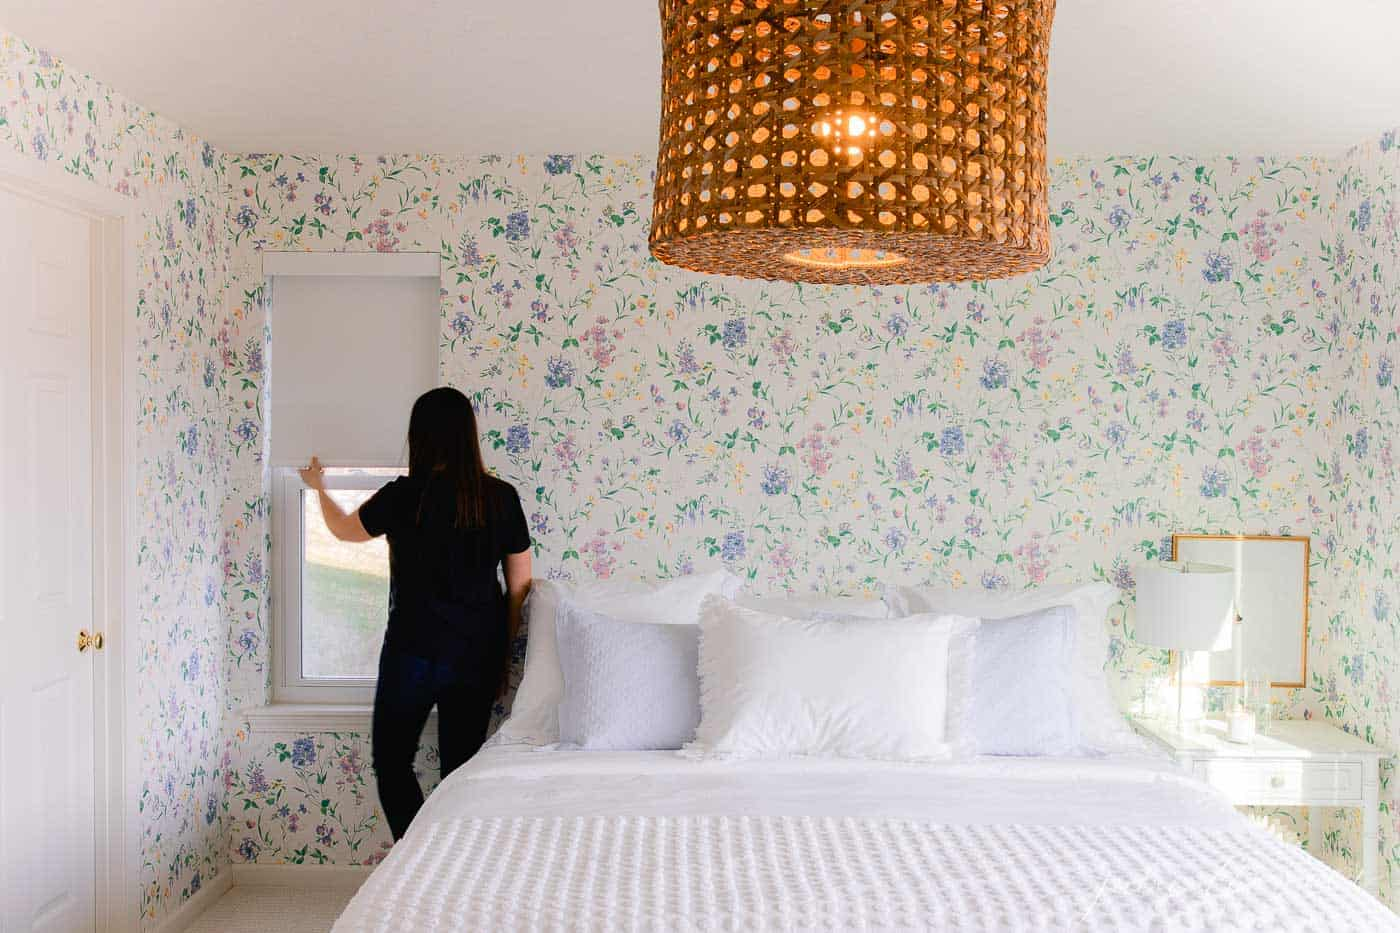 A cottage bedroom with white bedding, floral wallpaper, and a small window with a custom roller shade, woman at the window pulling shade down.